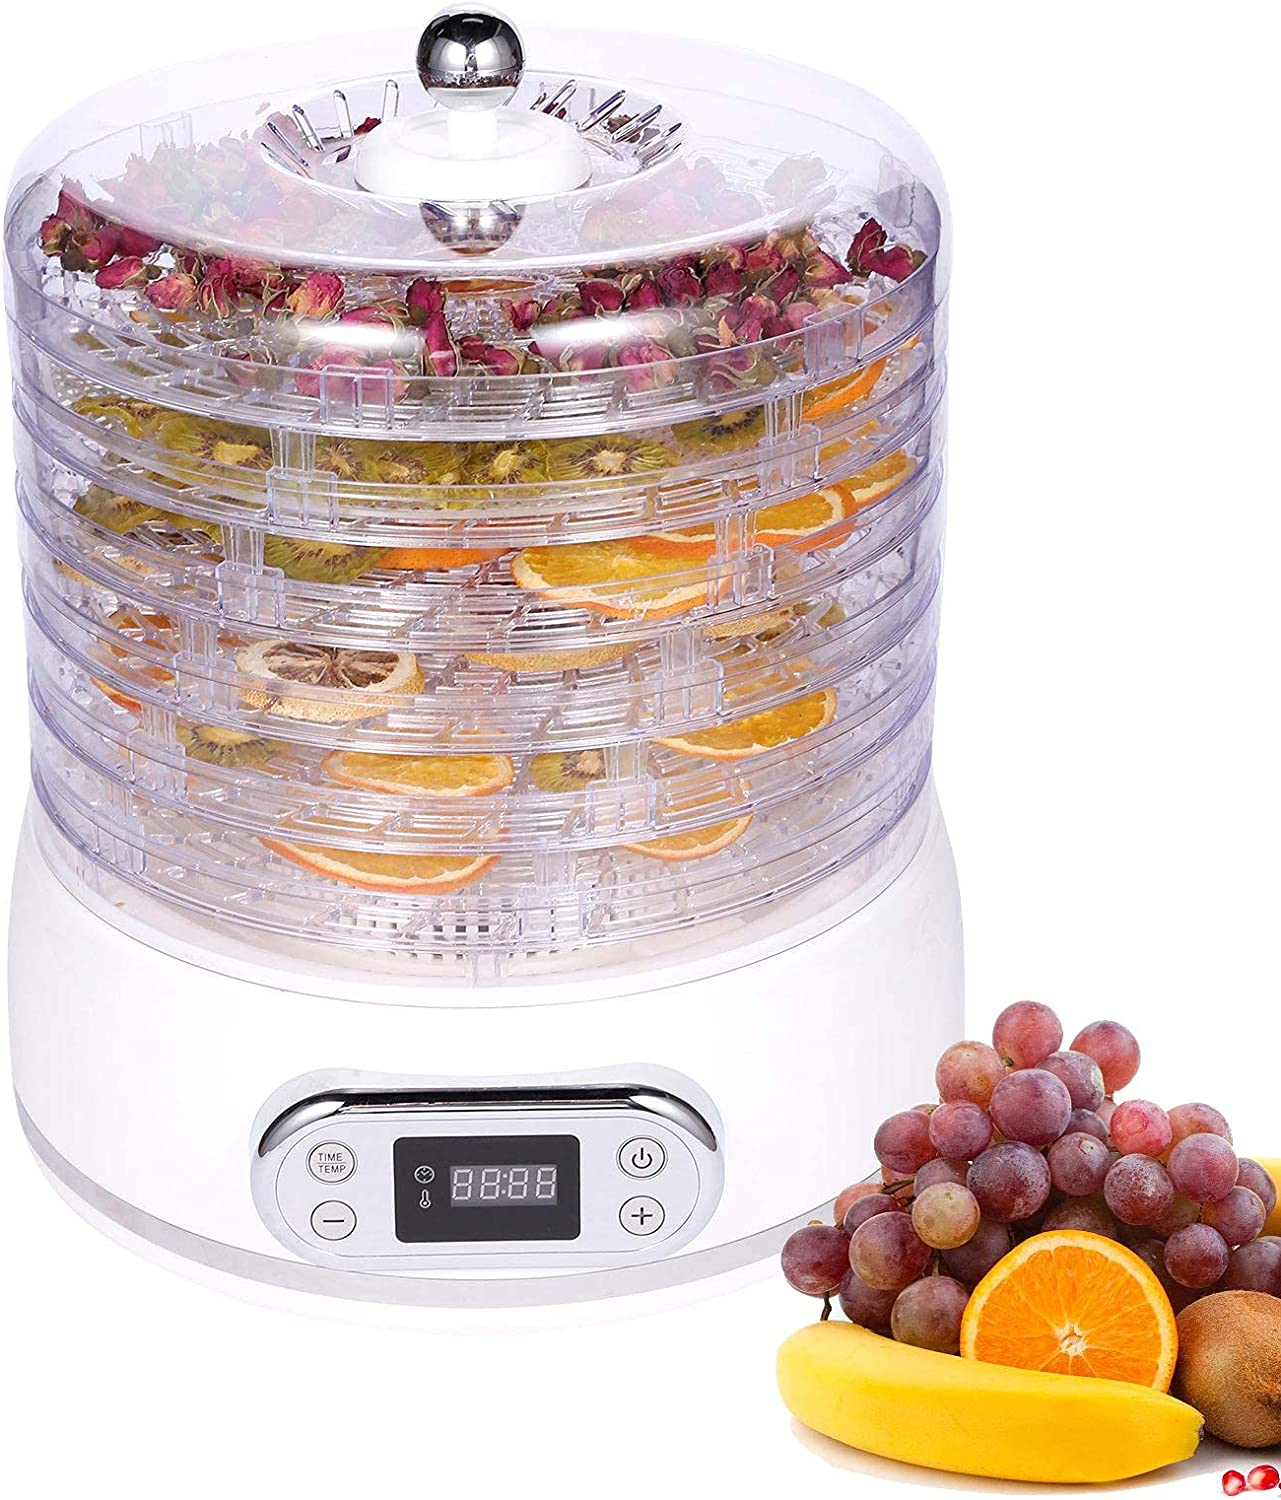 Dreamvan Food Dehydrator Machine, 6 Trays Fruit Dryer Machine with Adjustable Timer, Overheat Protection, Temperature Control, Dehydrator for Beef Jerky, Herb, Vegetable, Meat, Dog Treats (White) BPA Free